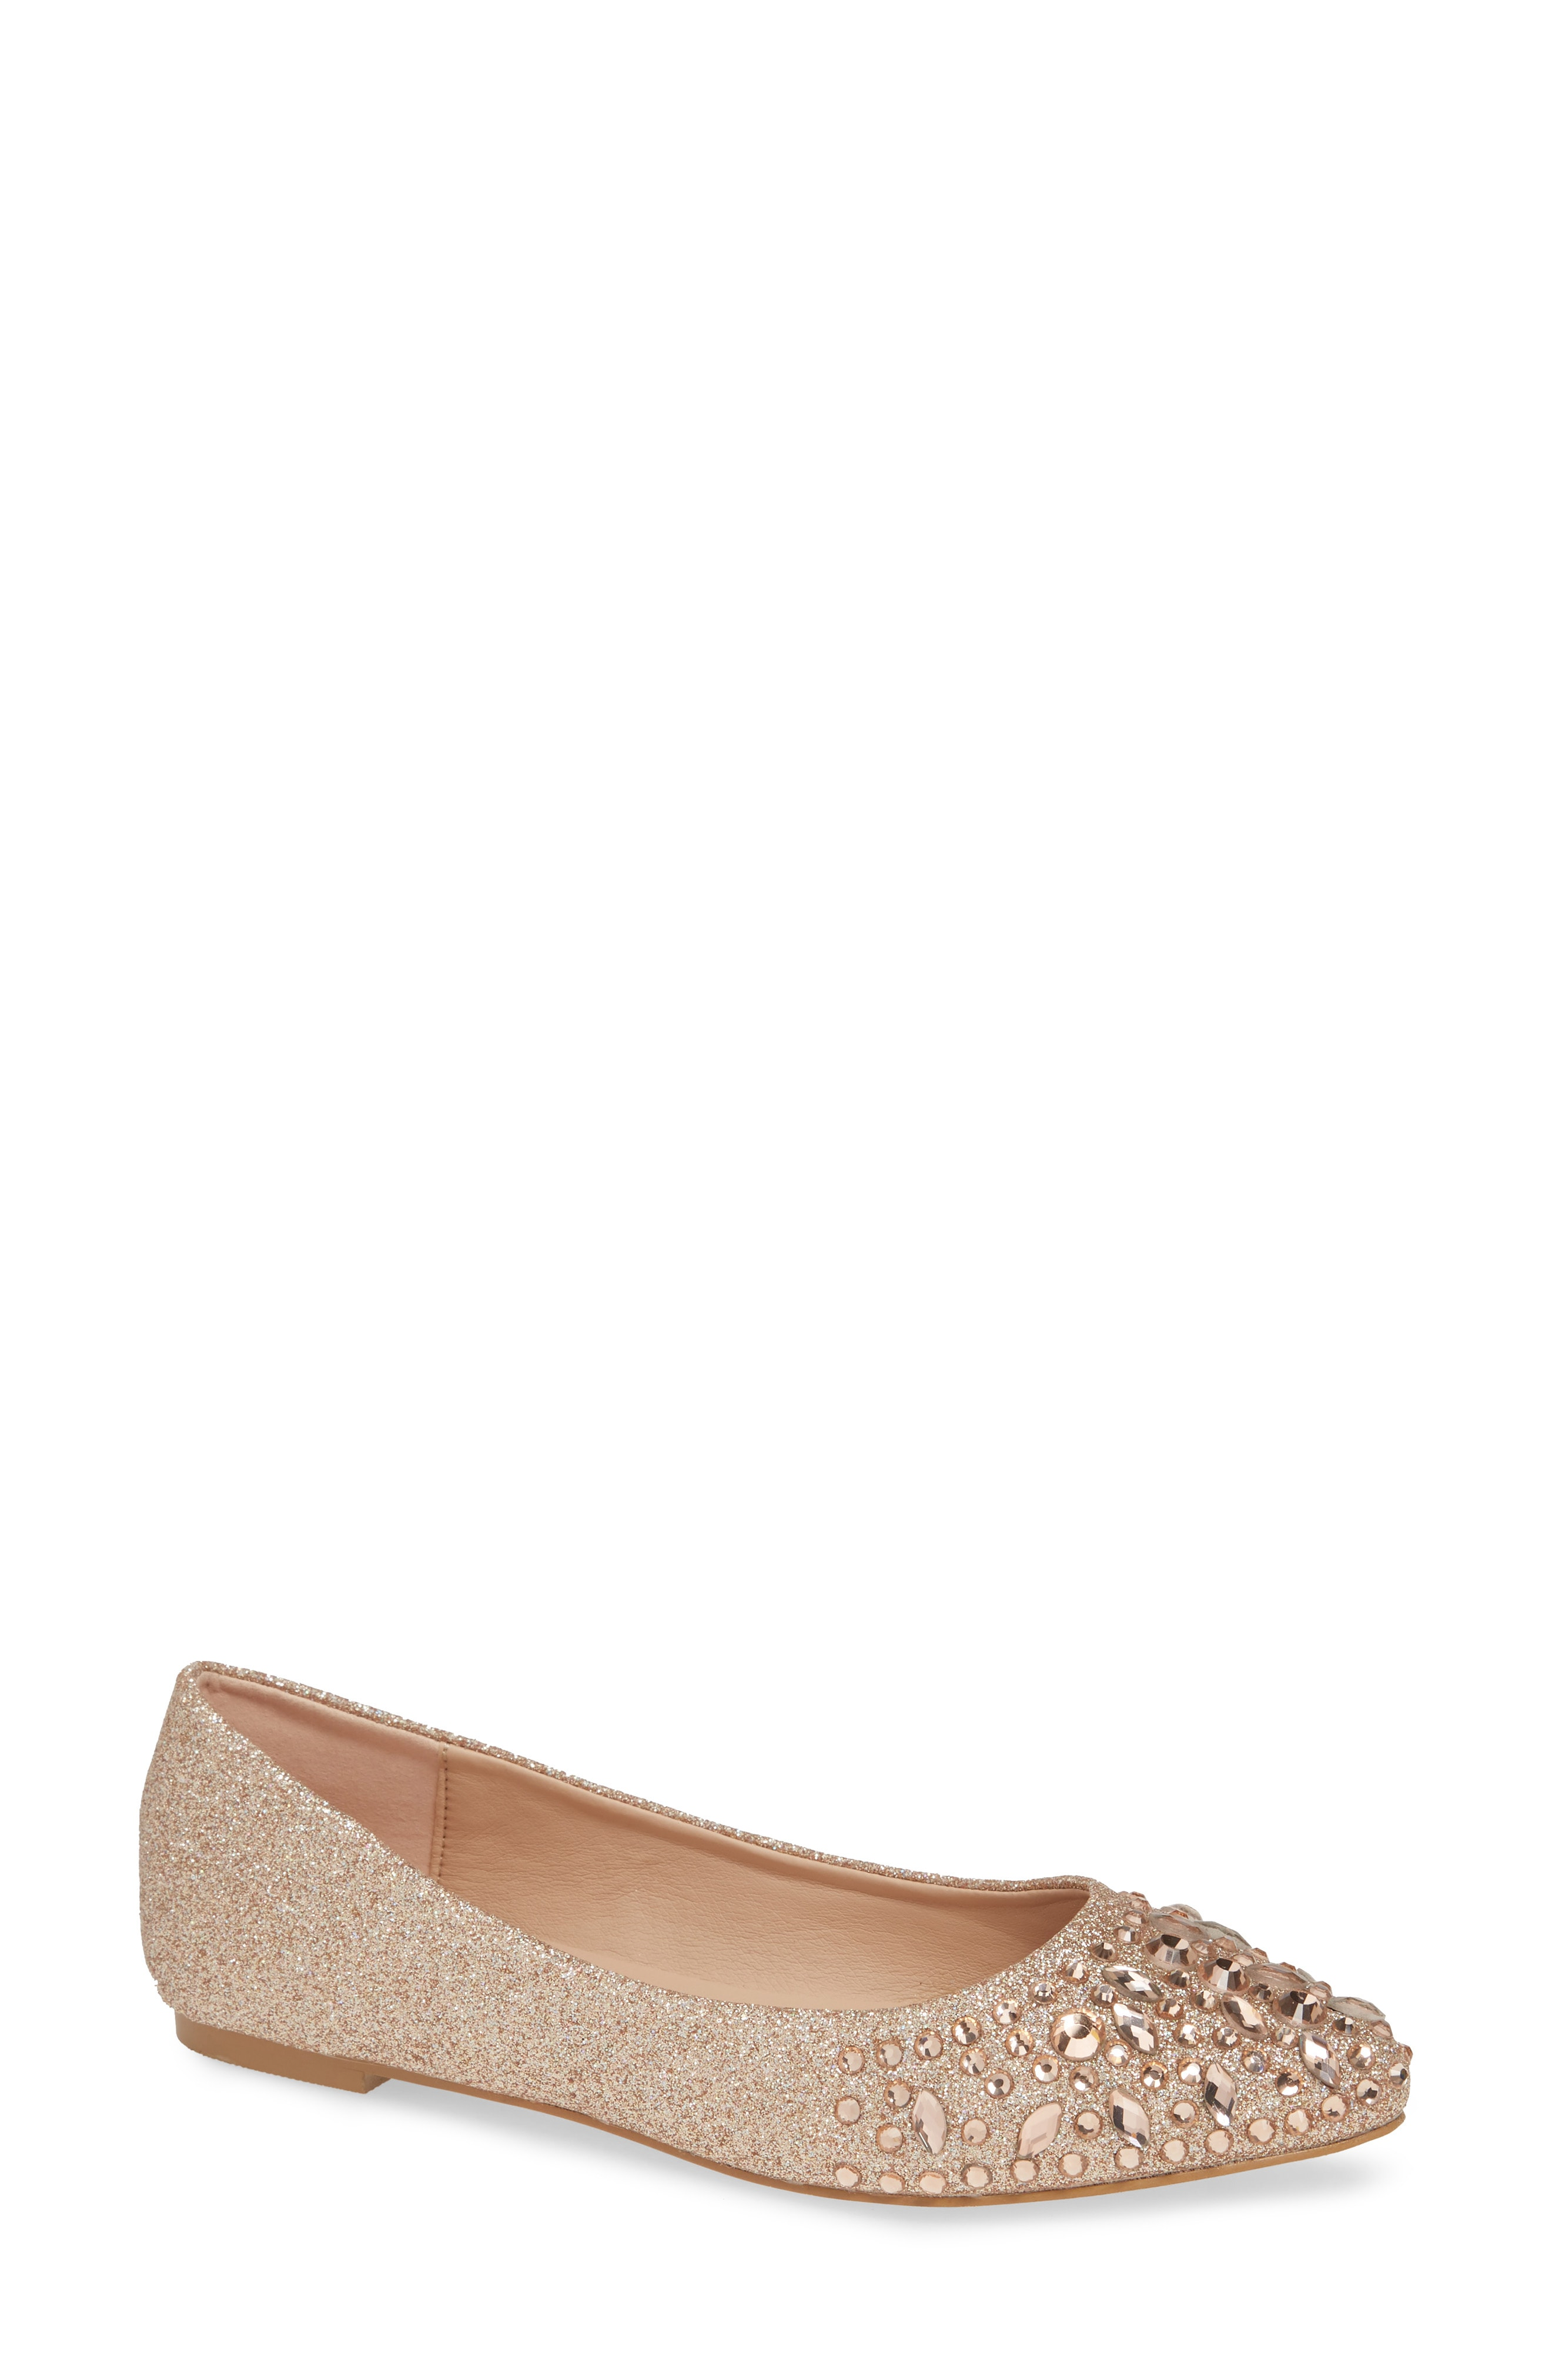 womens rose gold flats | Nordstrom